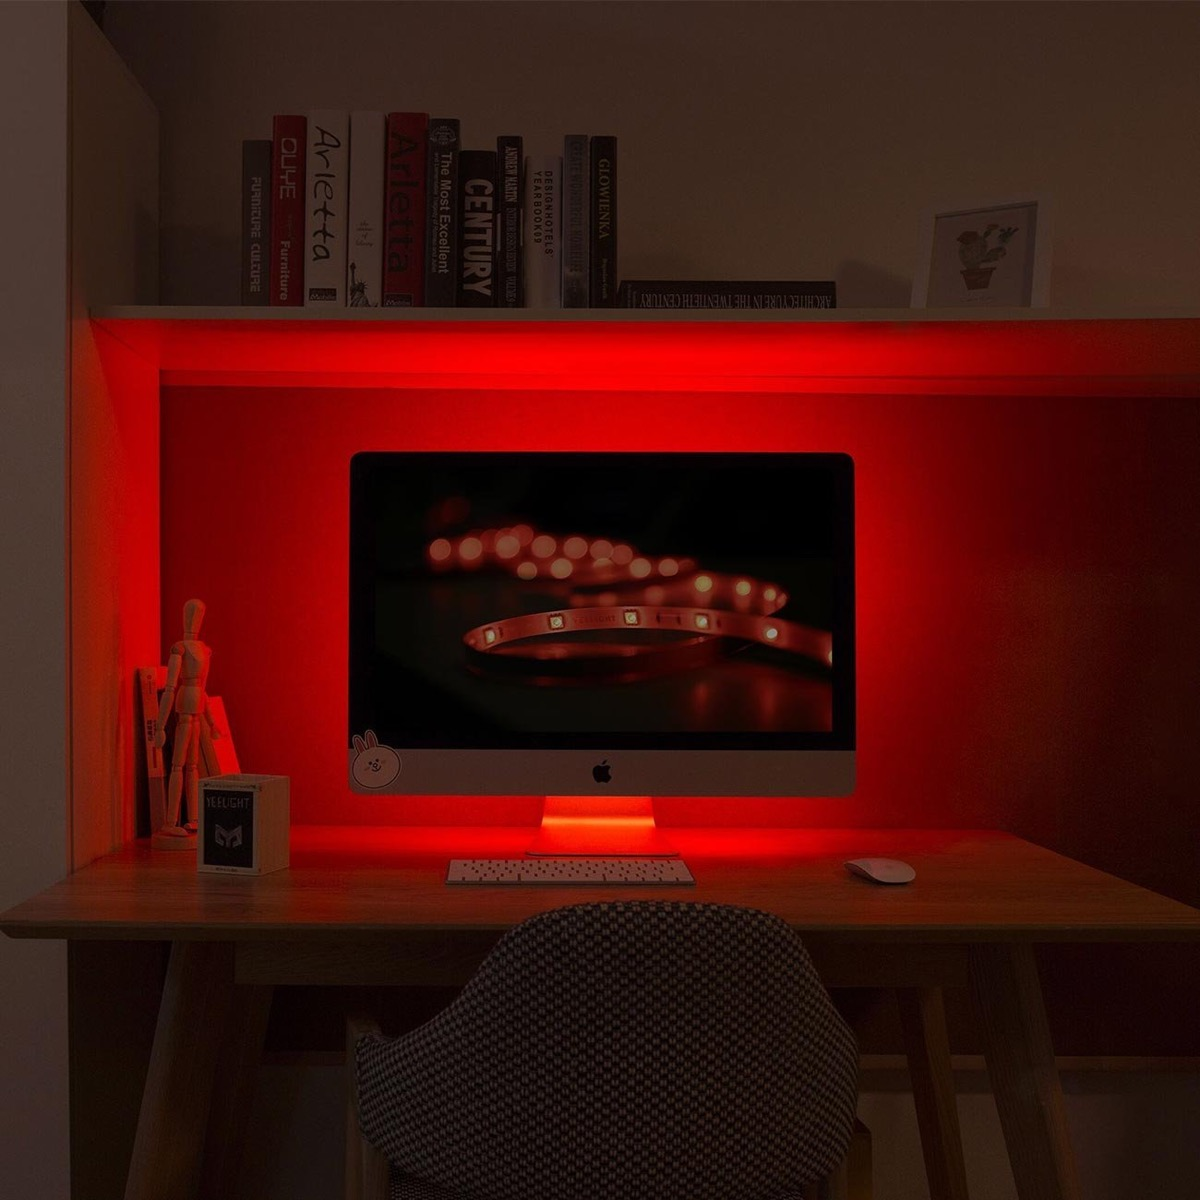 Product Of The Week Smart LED Light Strips For Mood Lighting